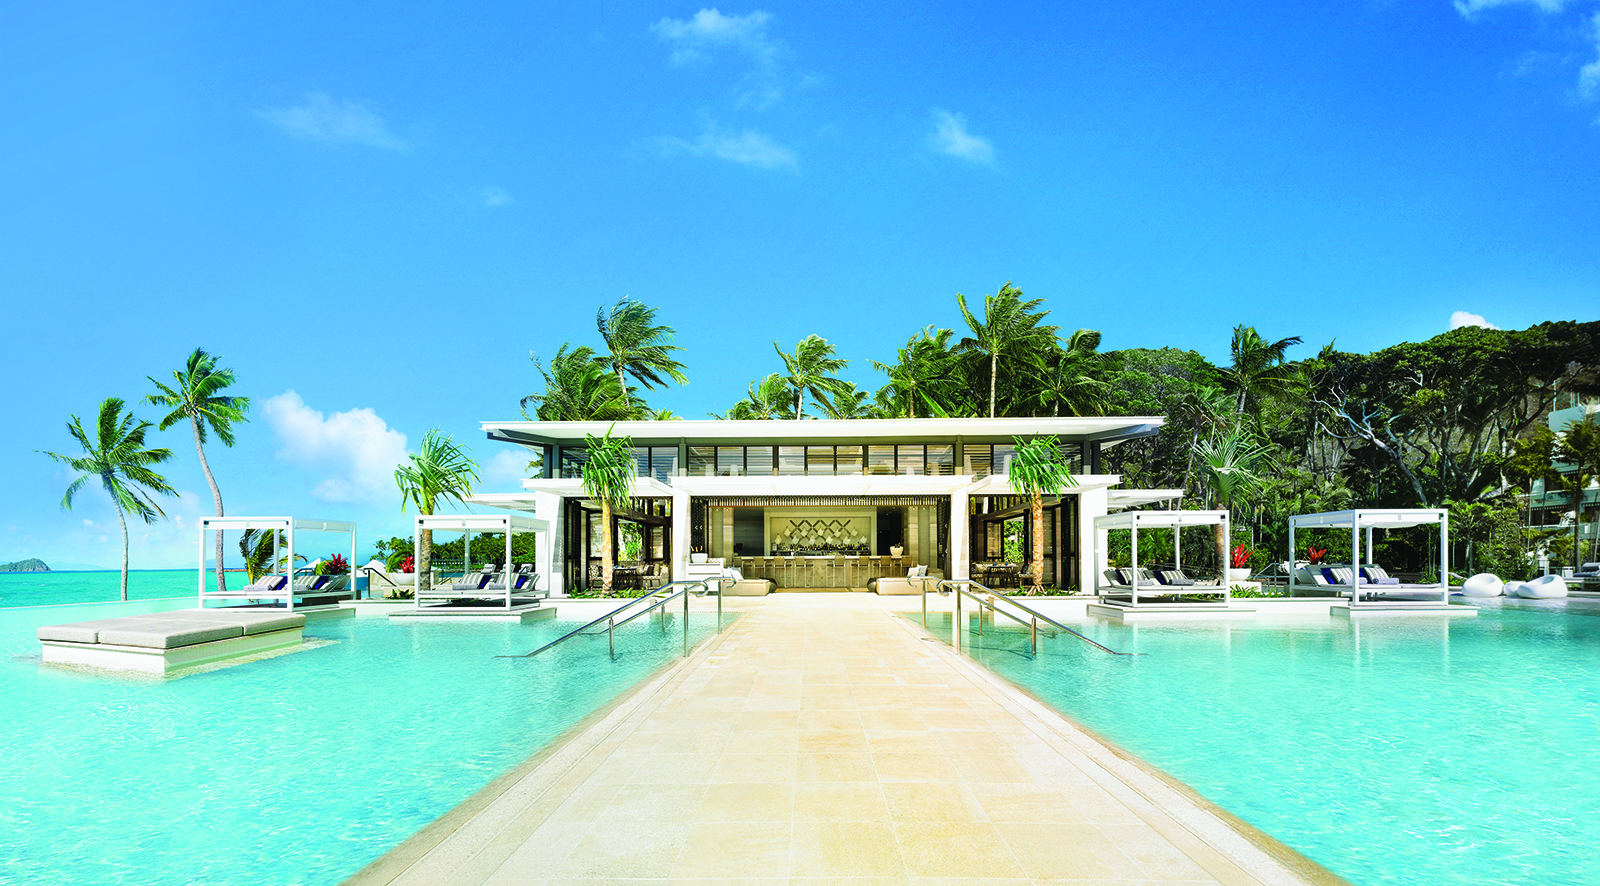 This image: The Aquazure beachfront dining venue at One&Only Hayman Island.